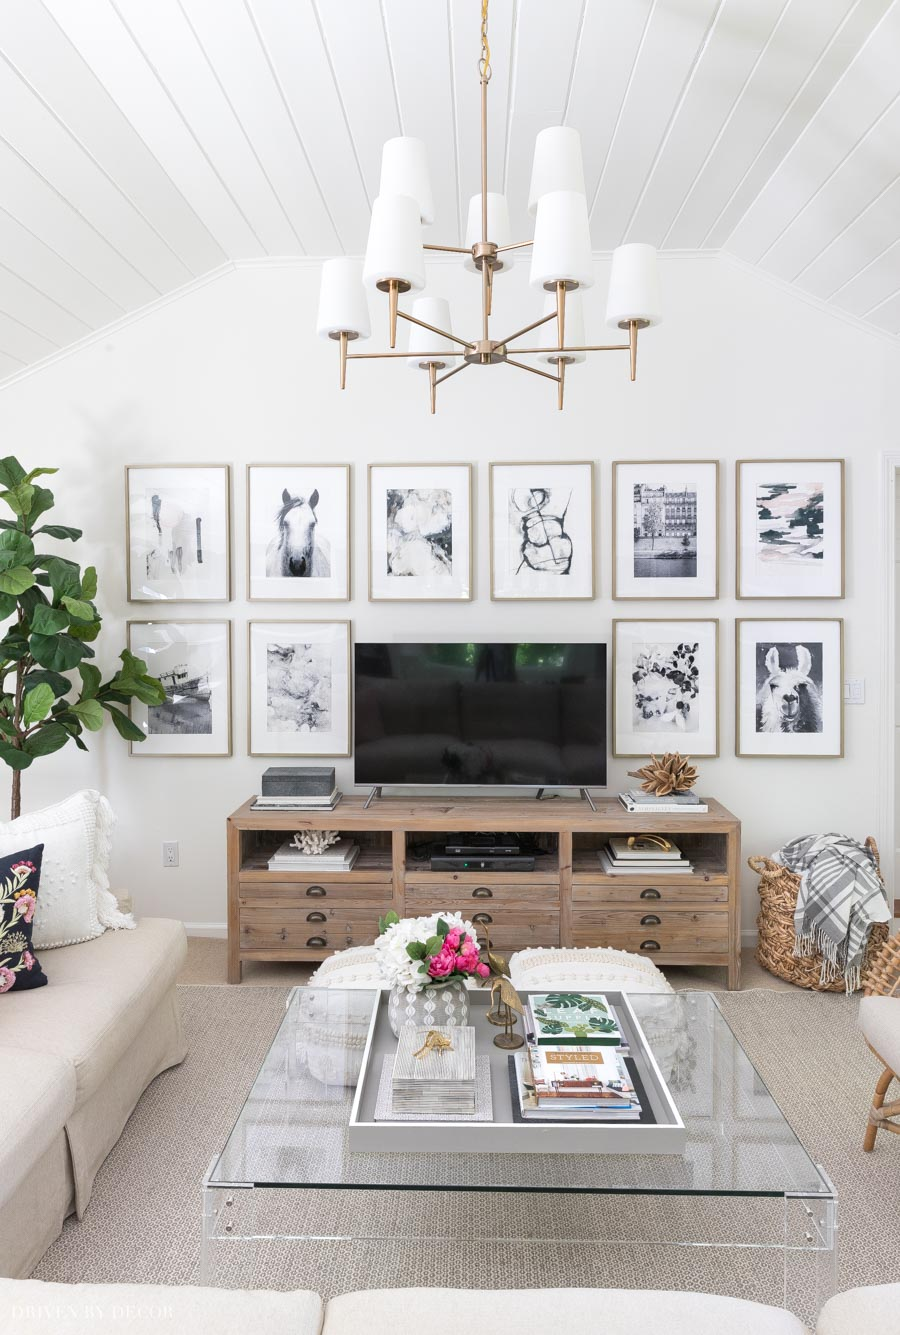 One of my favorite living room wall decor ideas in this post! Seems like an easy gallery wall to create!